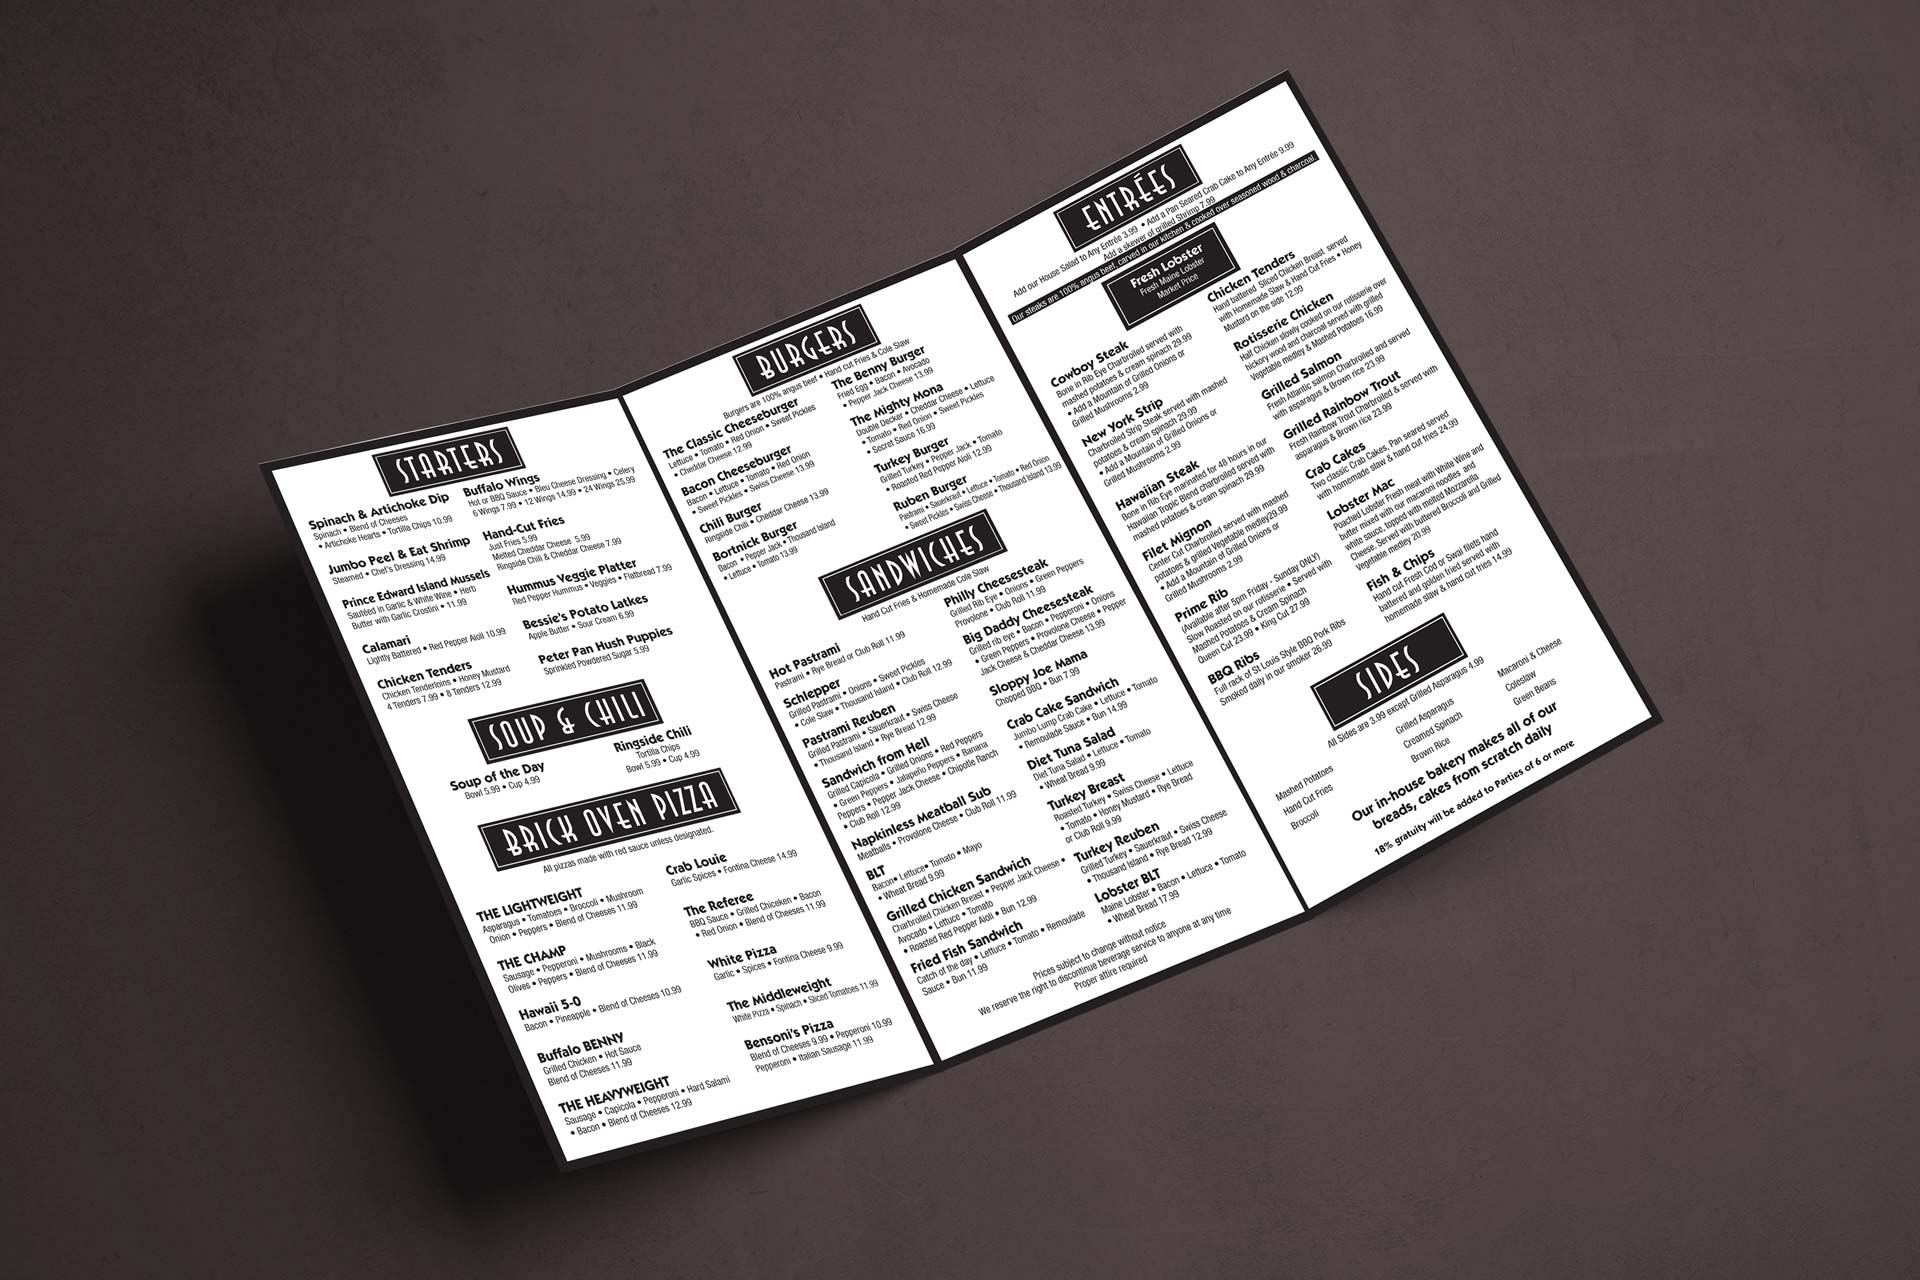 Benny's Bar & Grill Menu Layout (Inside)